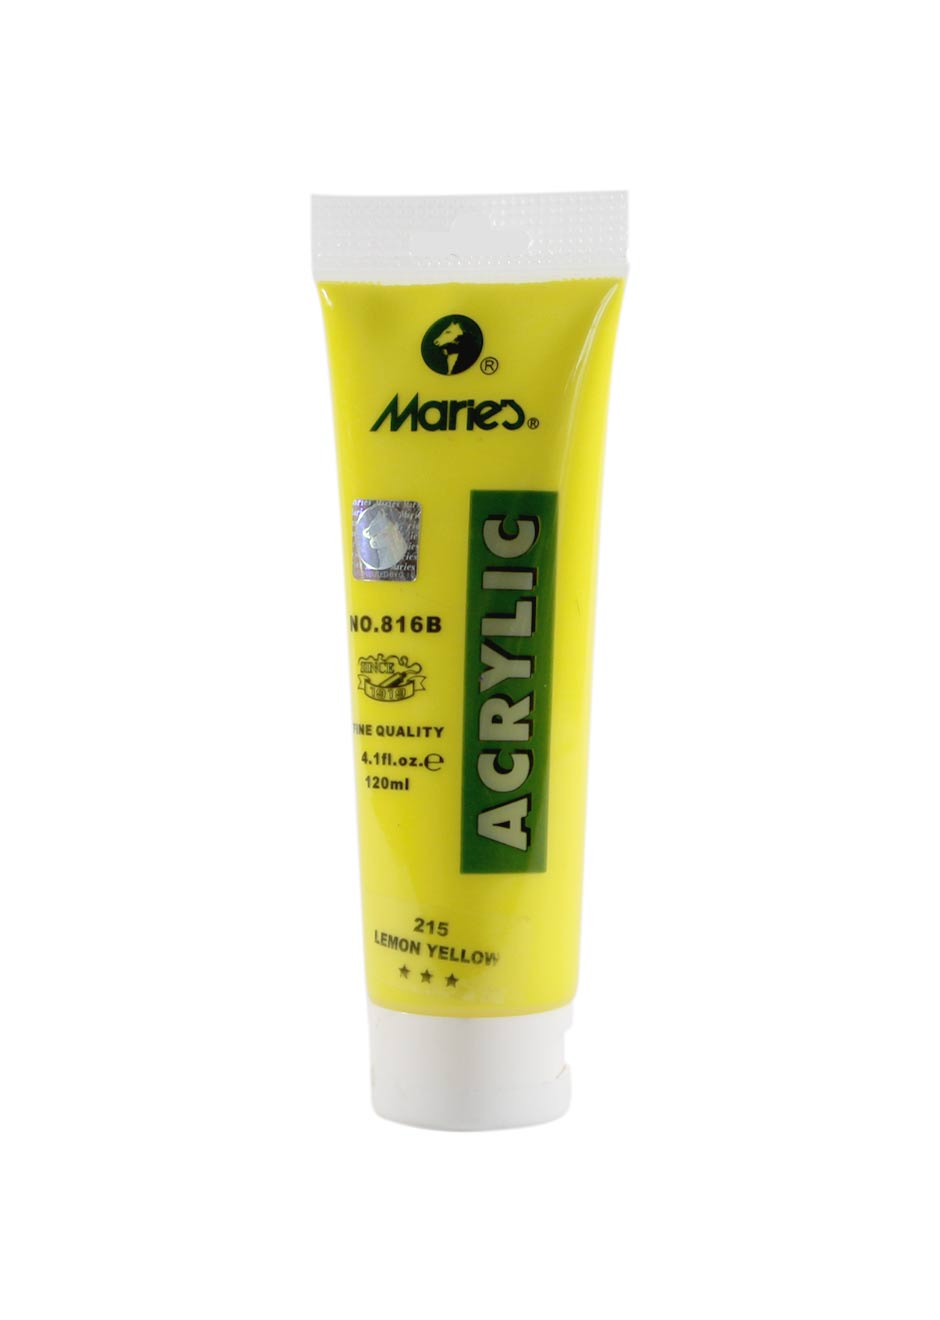 Maries-acrylic-lemon-yellow-120-ml